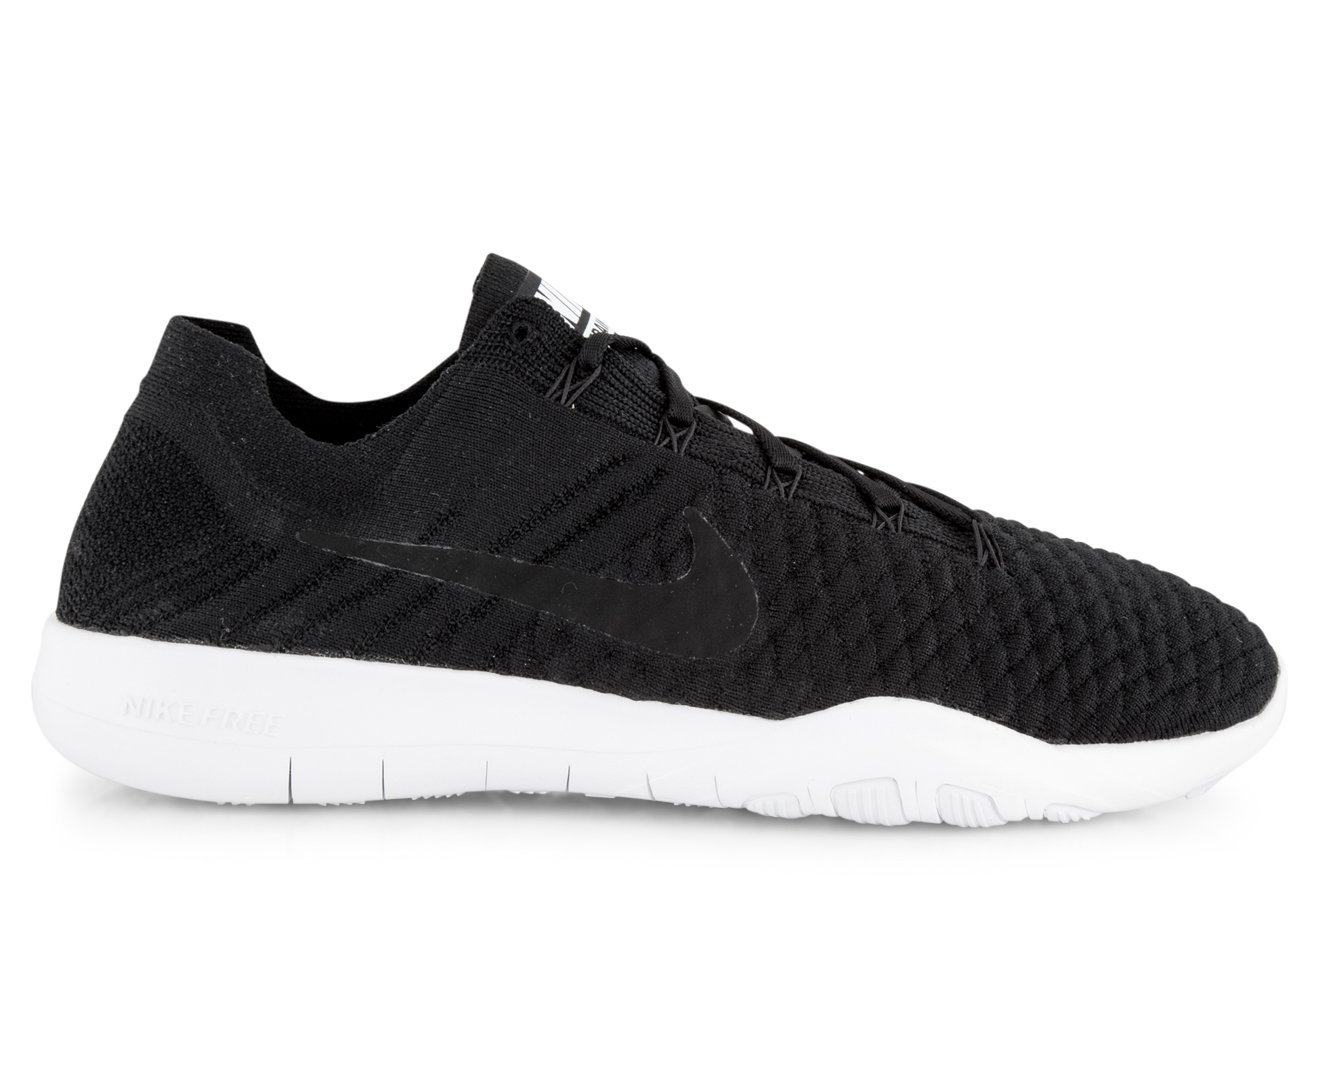 NIKE Free TR Flyknit 2 Womens Running Shoes B0744PKHXQ 8.5 B(M) US|Black/Black-white